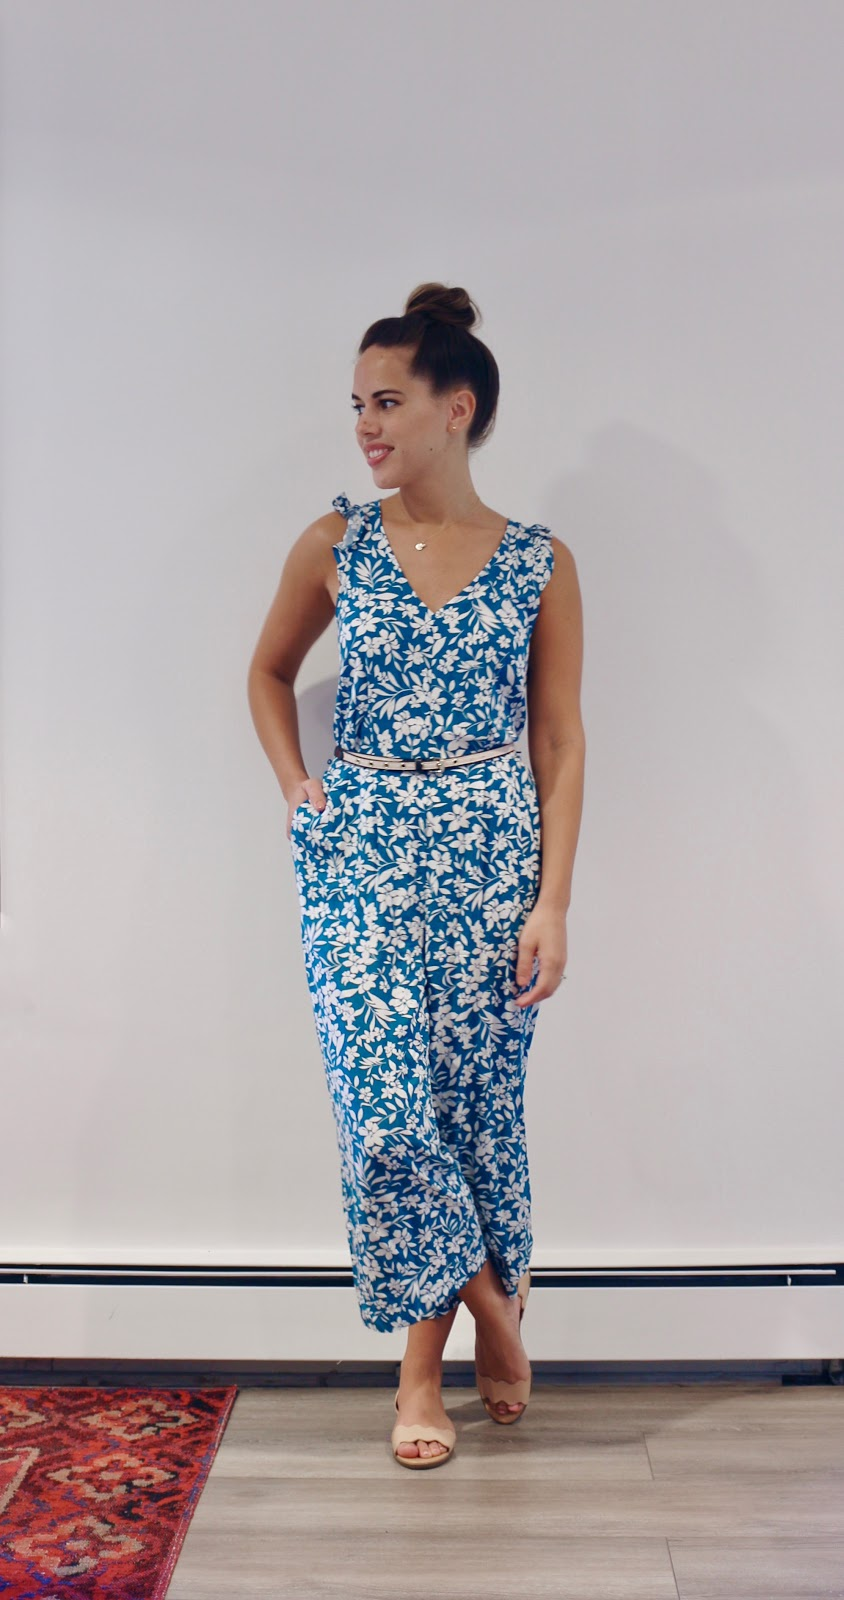 Jules in Flats -  Cropped Floral Jumpsuit (Business Casual Summer Workwear on a Budget)